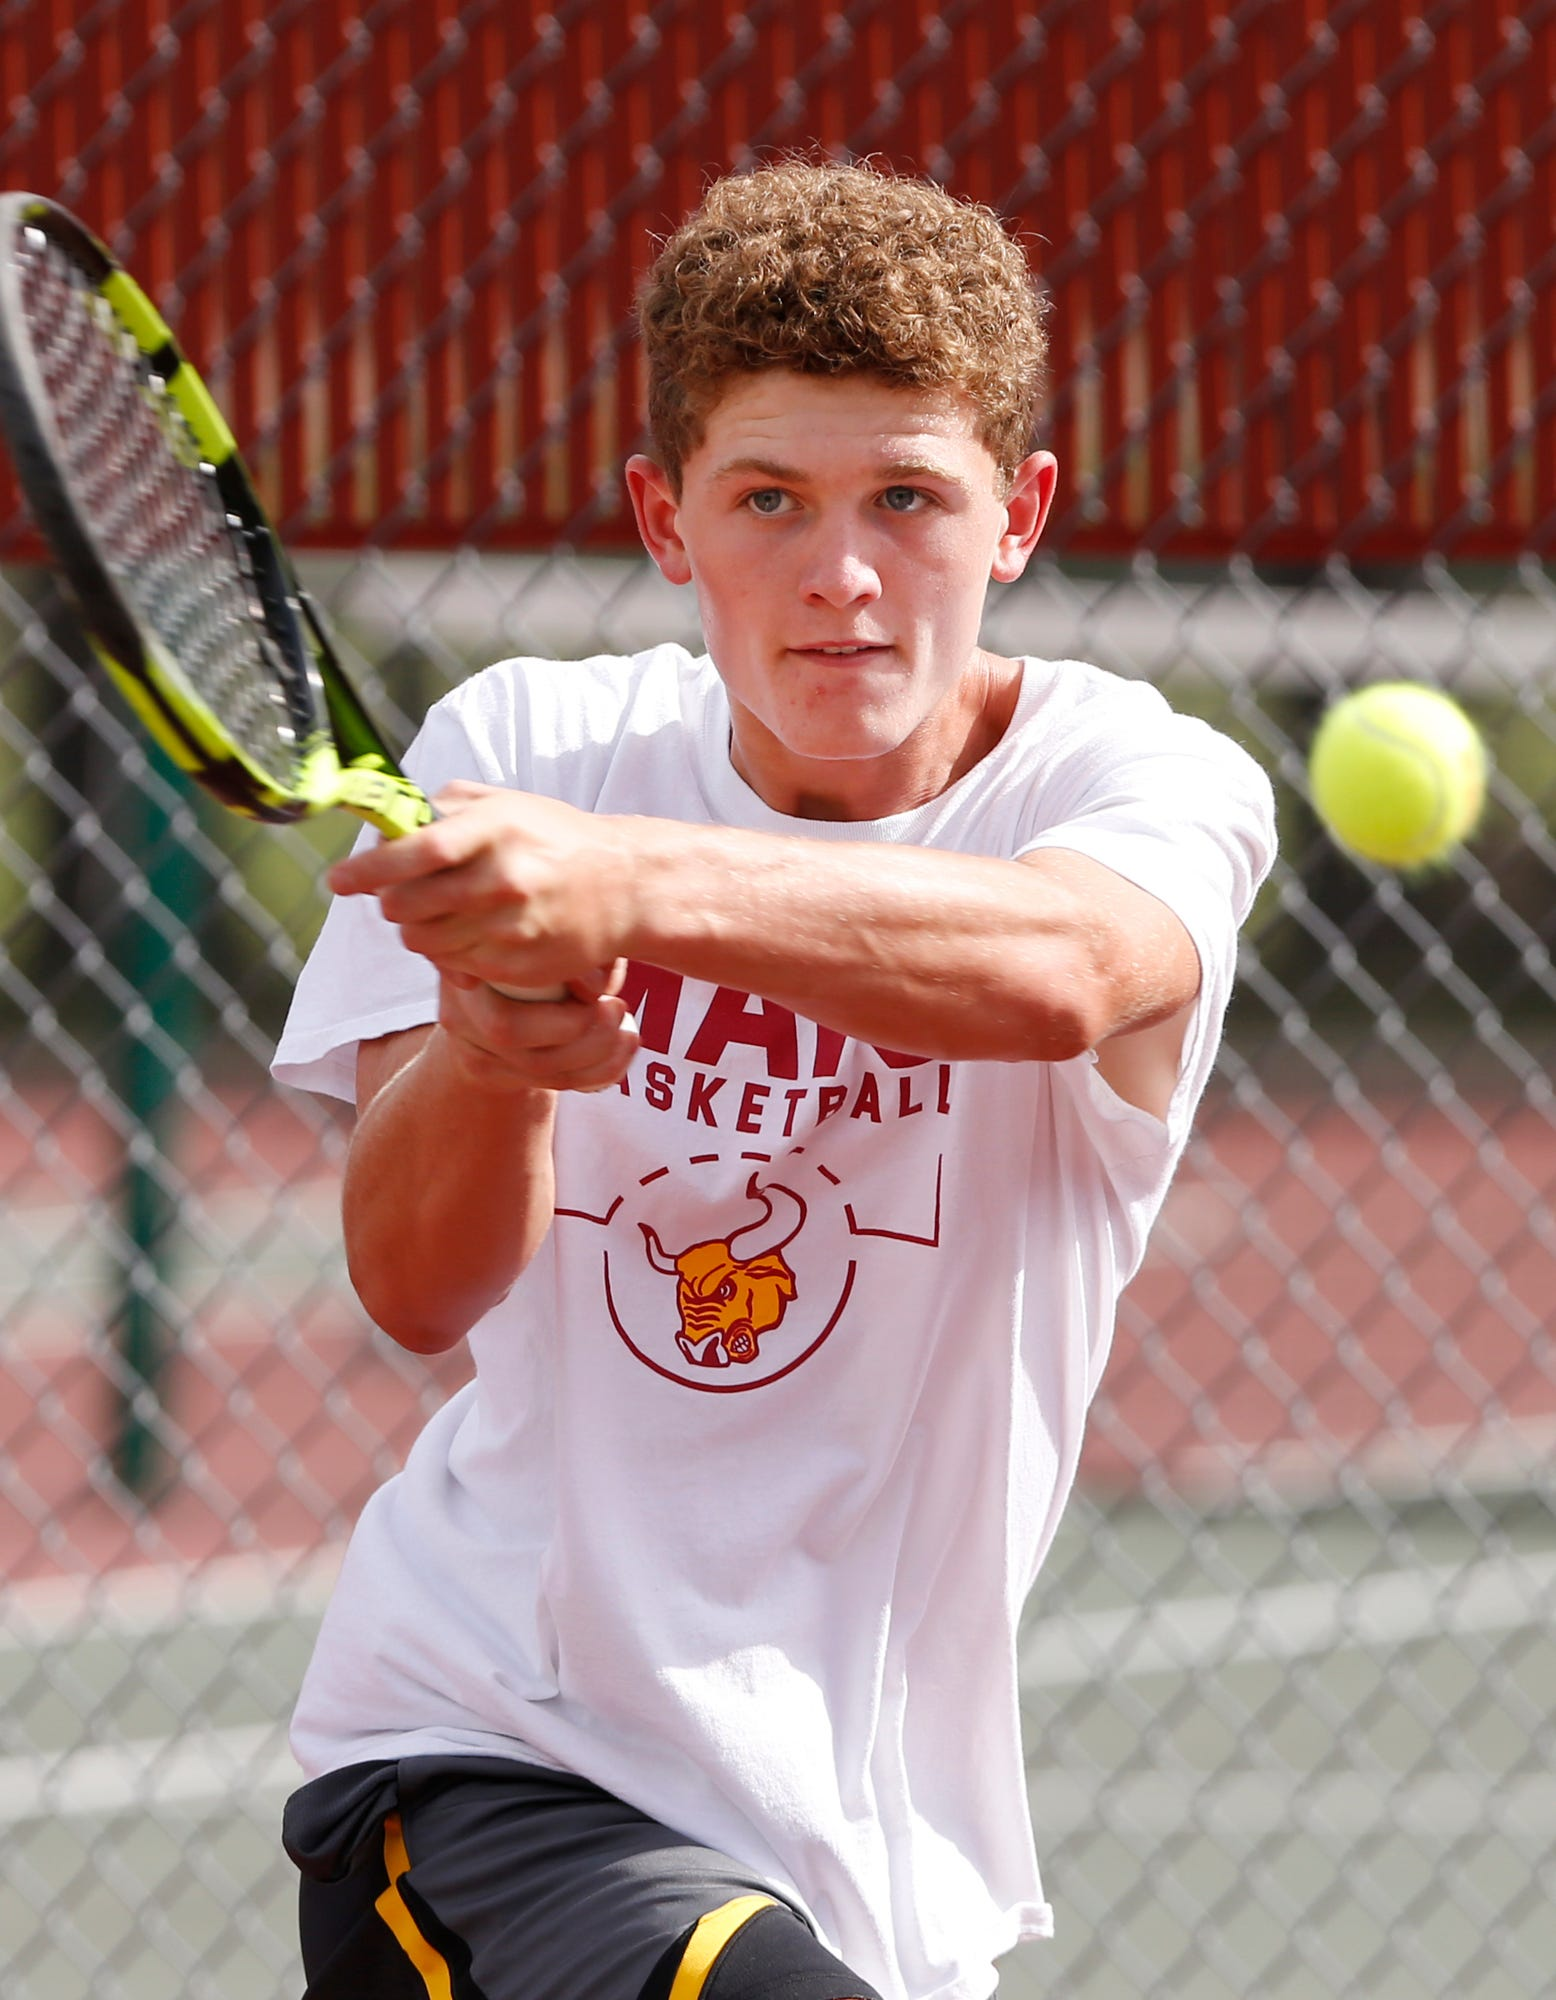 Rowen Farrell with a return during tennis practice Monday at McCutcheon. Farrell plays at No. 3 singles for the Mavericks, who are pursuing the school's first sectional title..